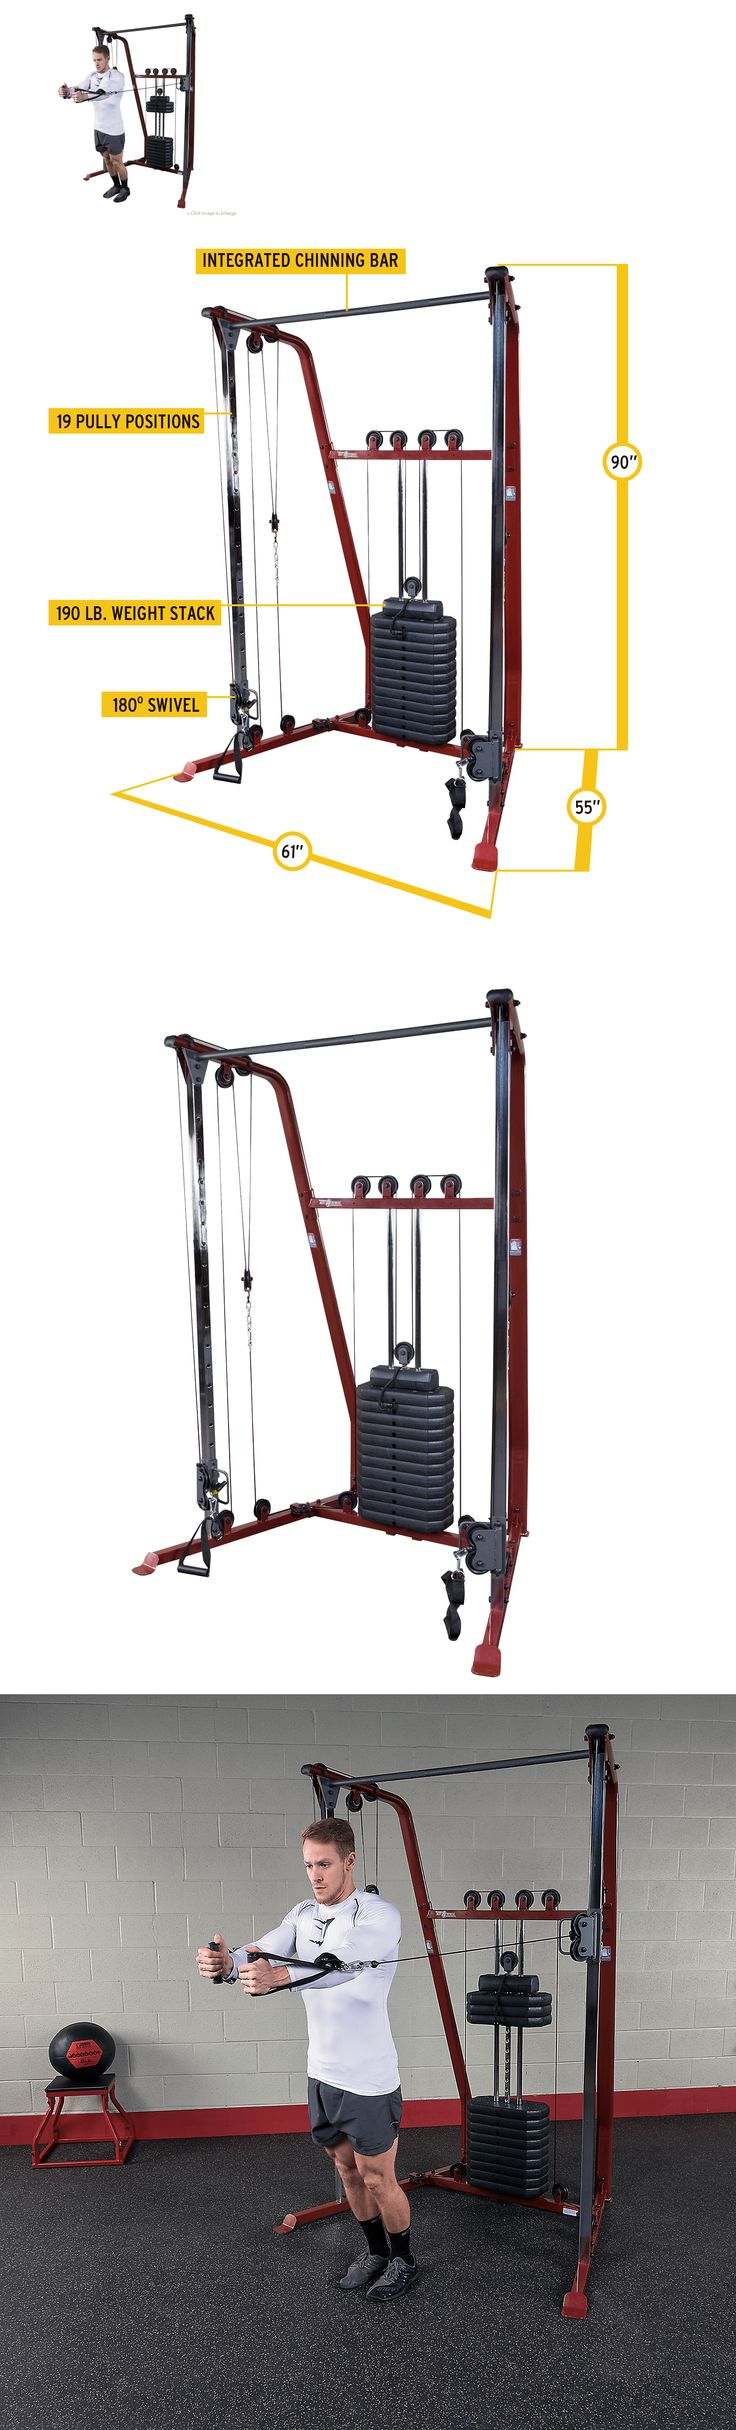 Home Gyms 158923: Functional Trainer W/ 190 Lb Weight Stack, Best Fitness Bfft10 Home Gym Machine BUY IT NOW ONLY: $560.0